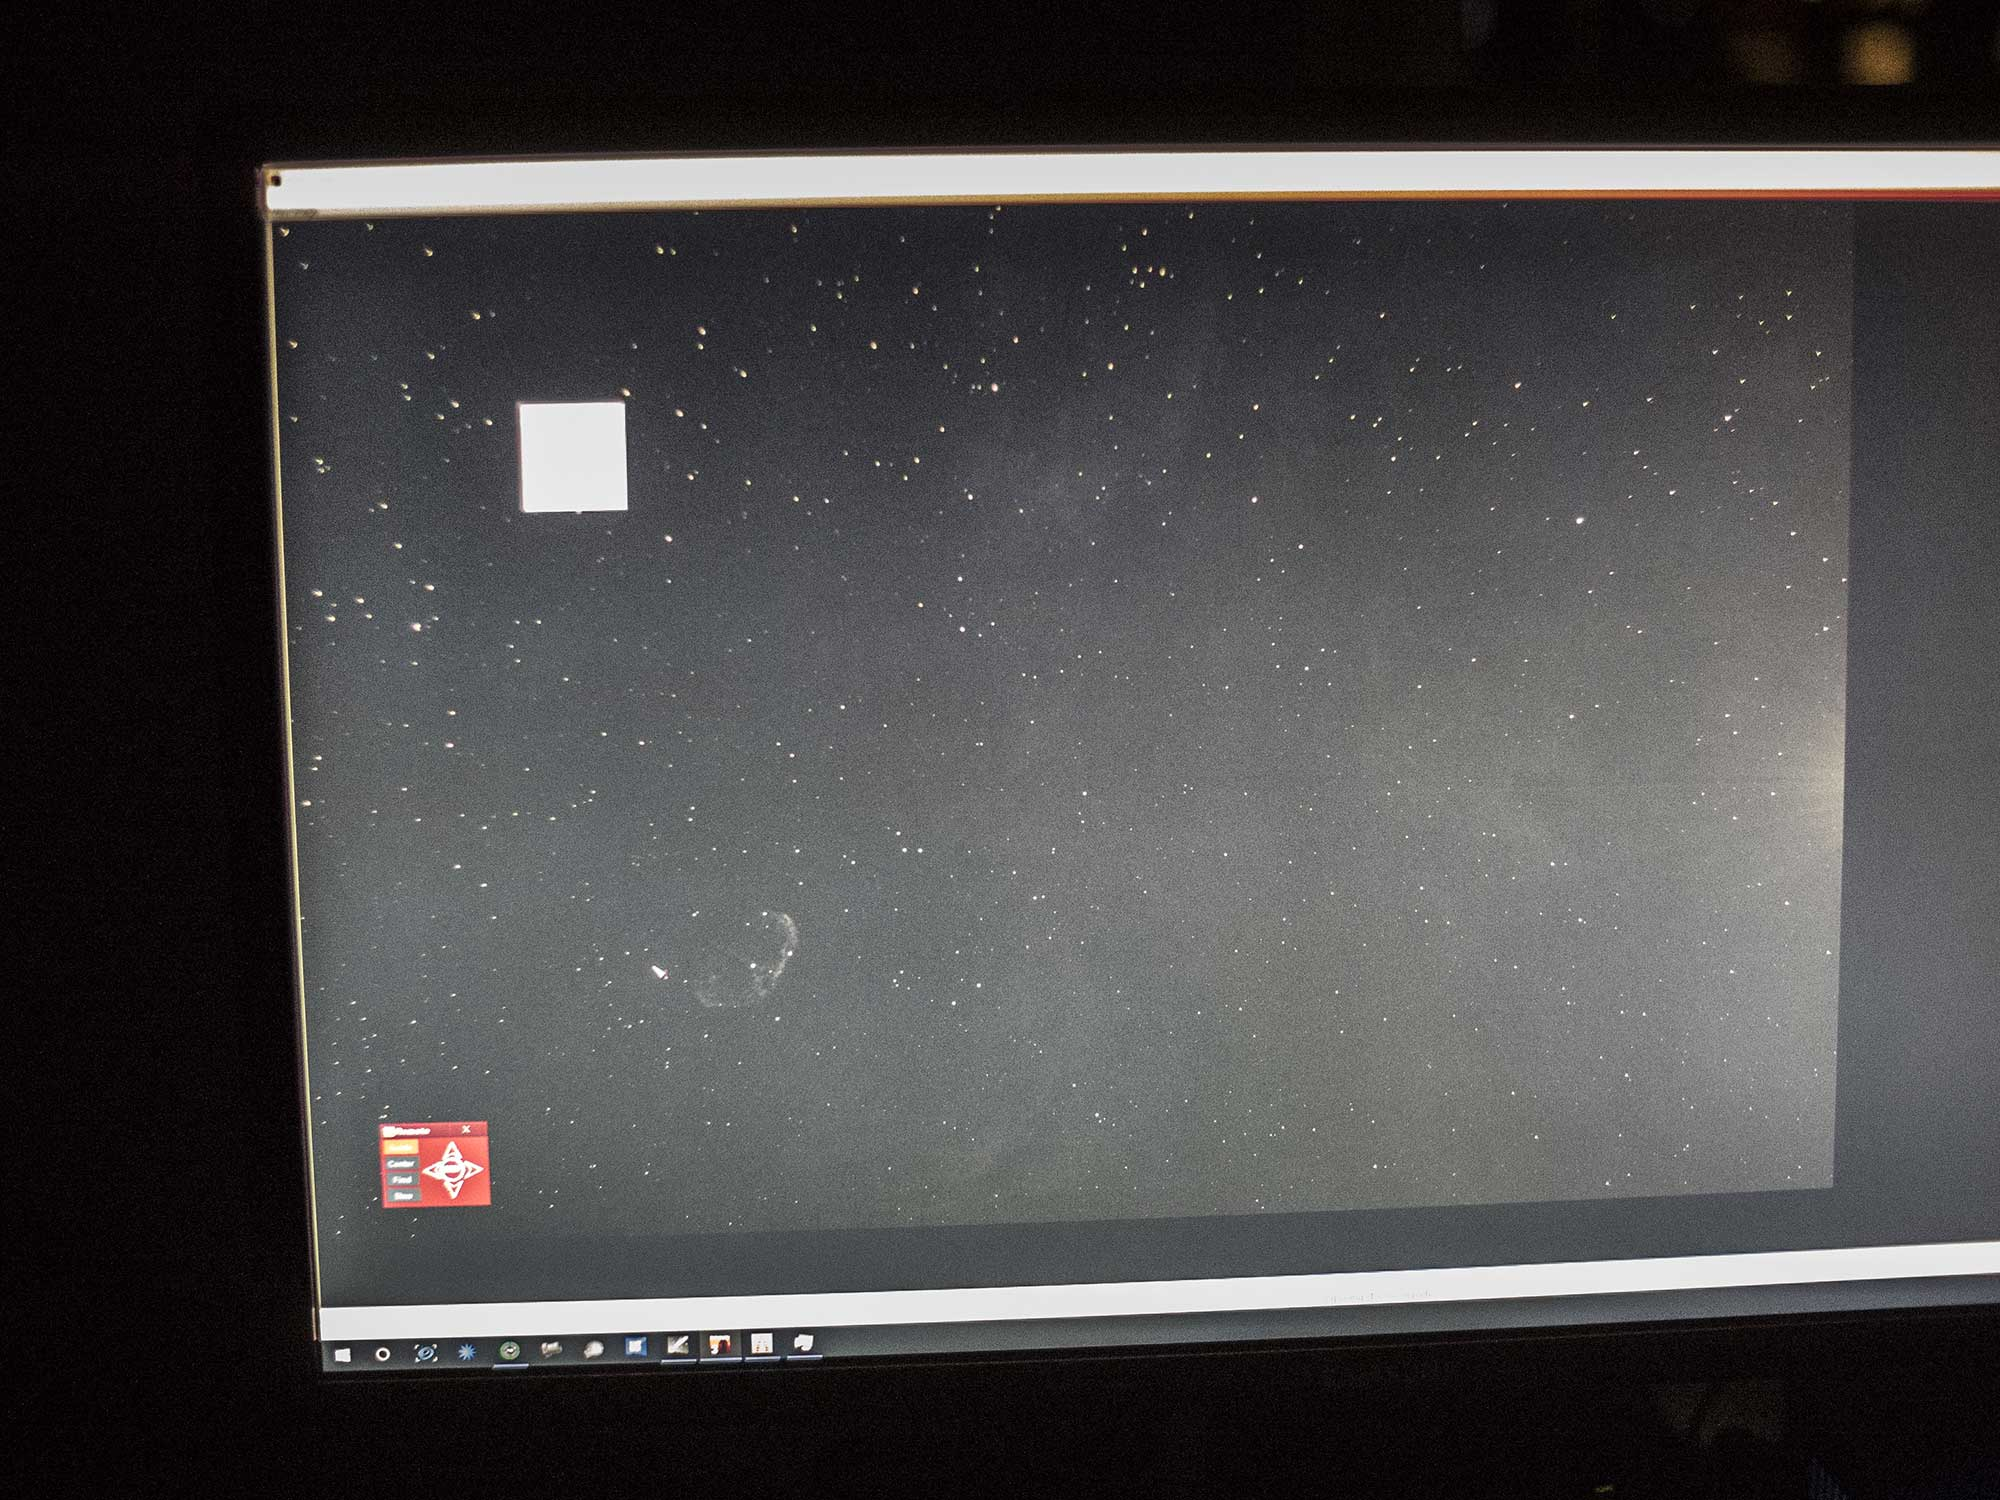 First light for the Borg 55FL imaging NGC6888 in hydrogen alpha